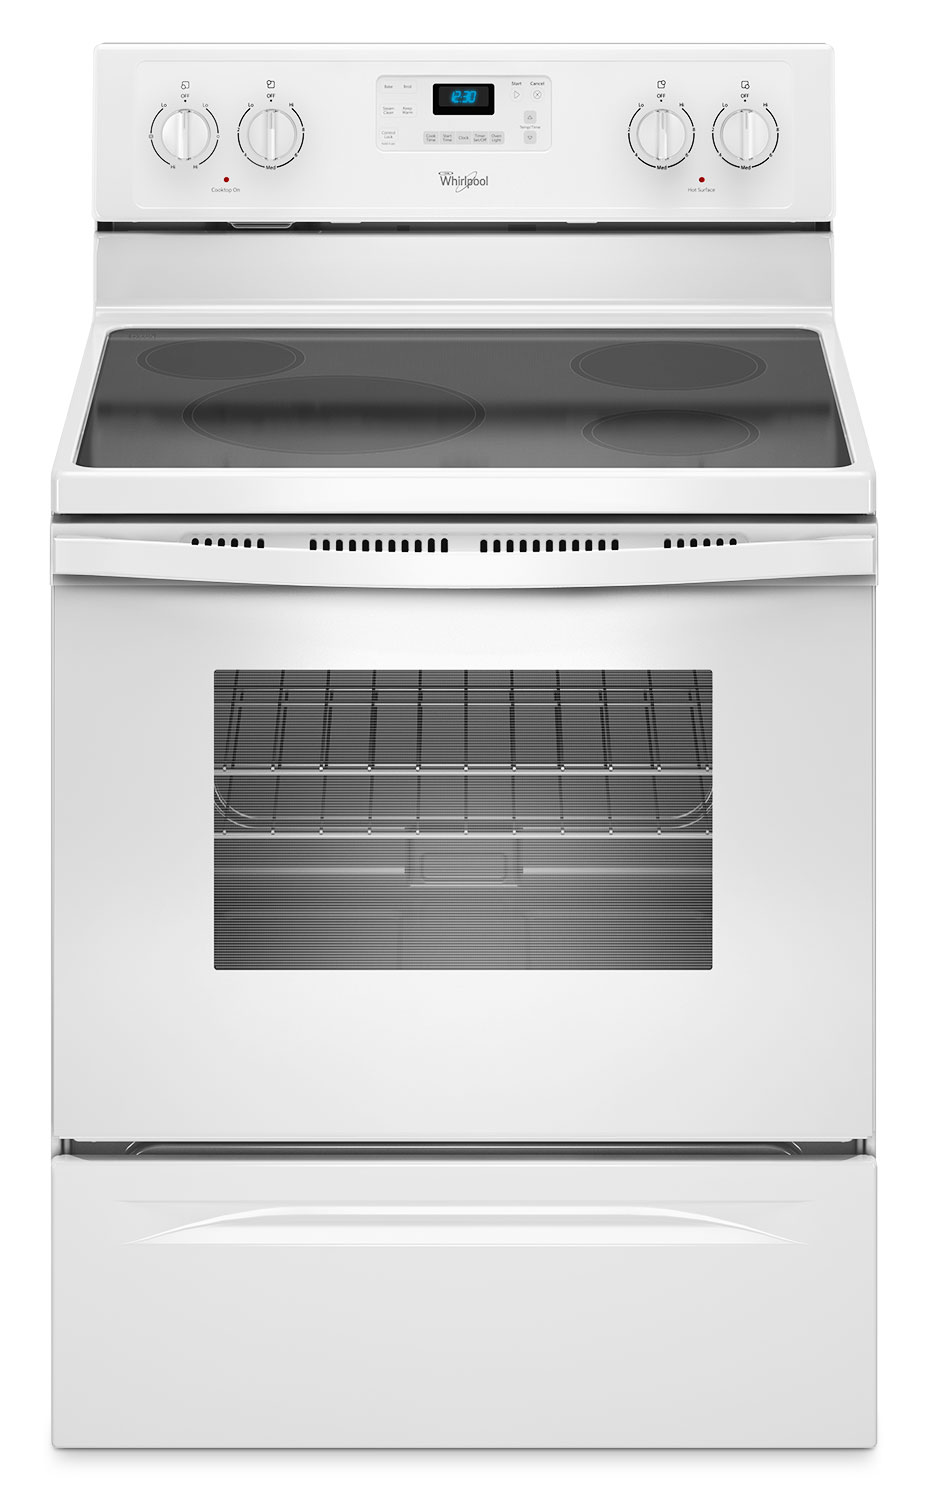 Whirlpool White Freestanding Electric Range with FlexHeat™ Element (5.3 Cu. Ft.) - YWFE330W0EW